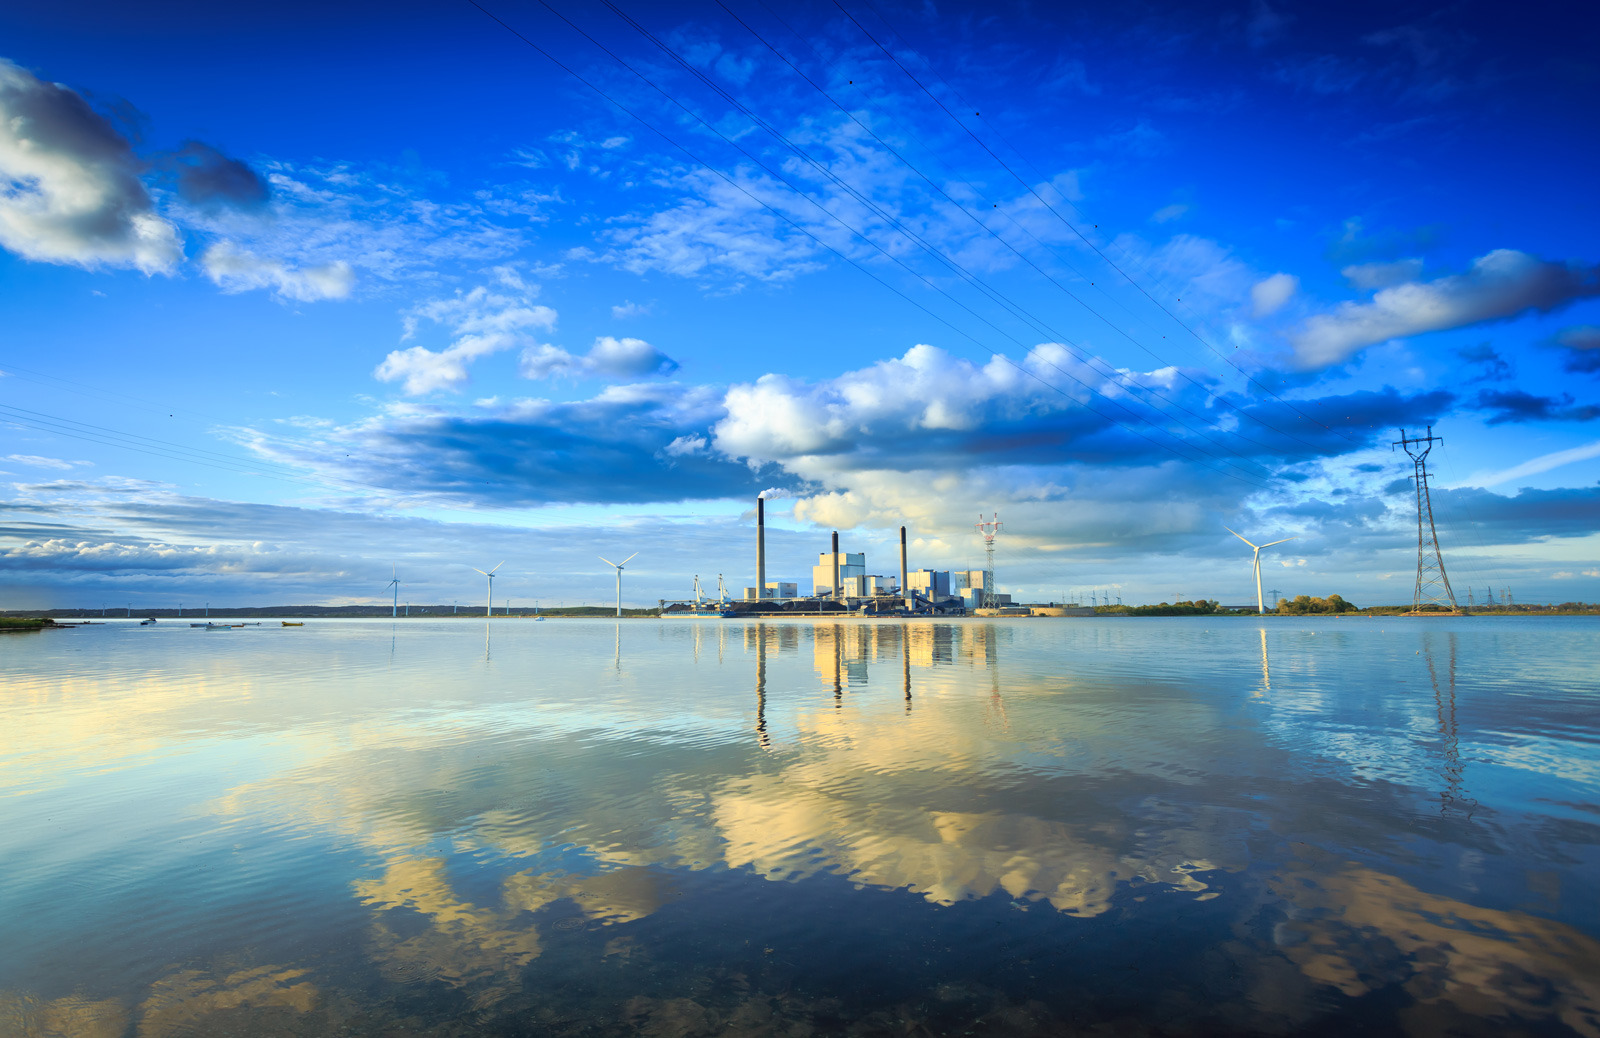 Power plant on the water. Getty Images.